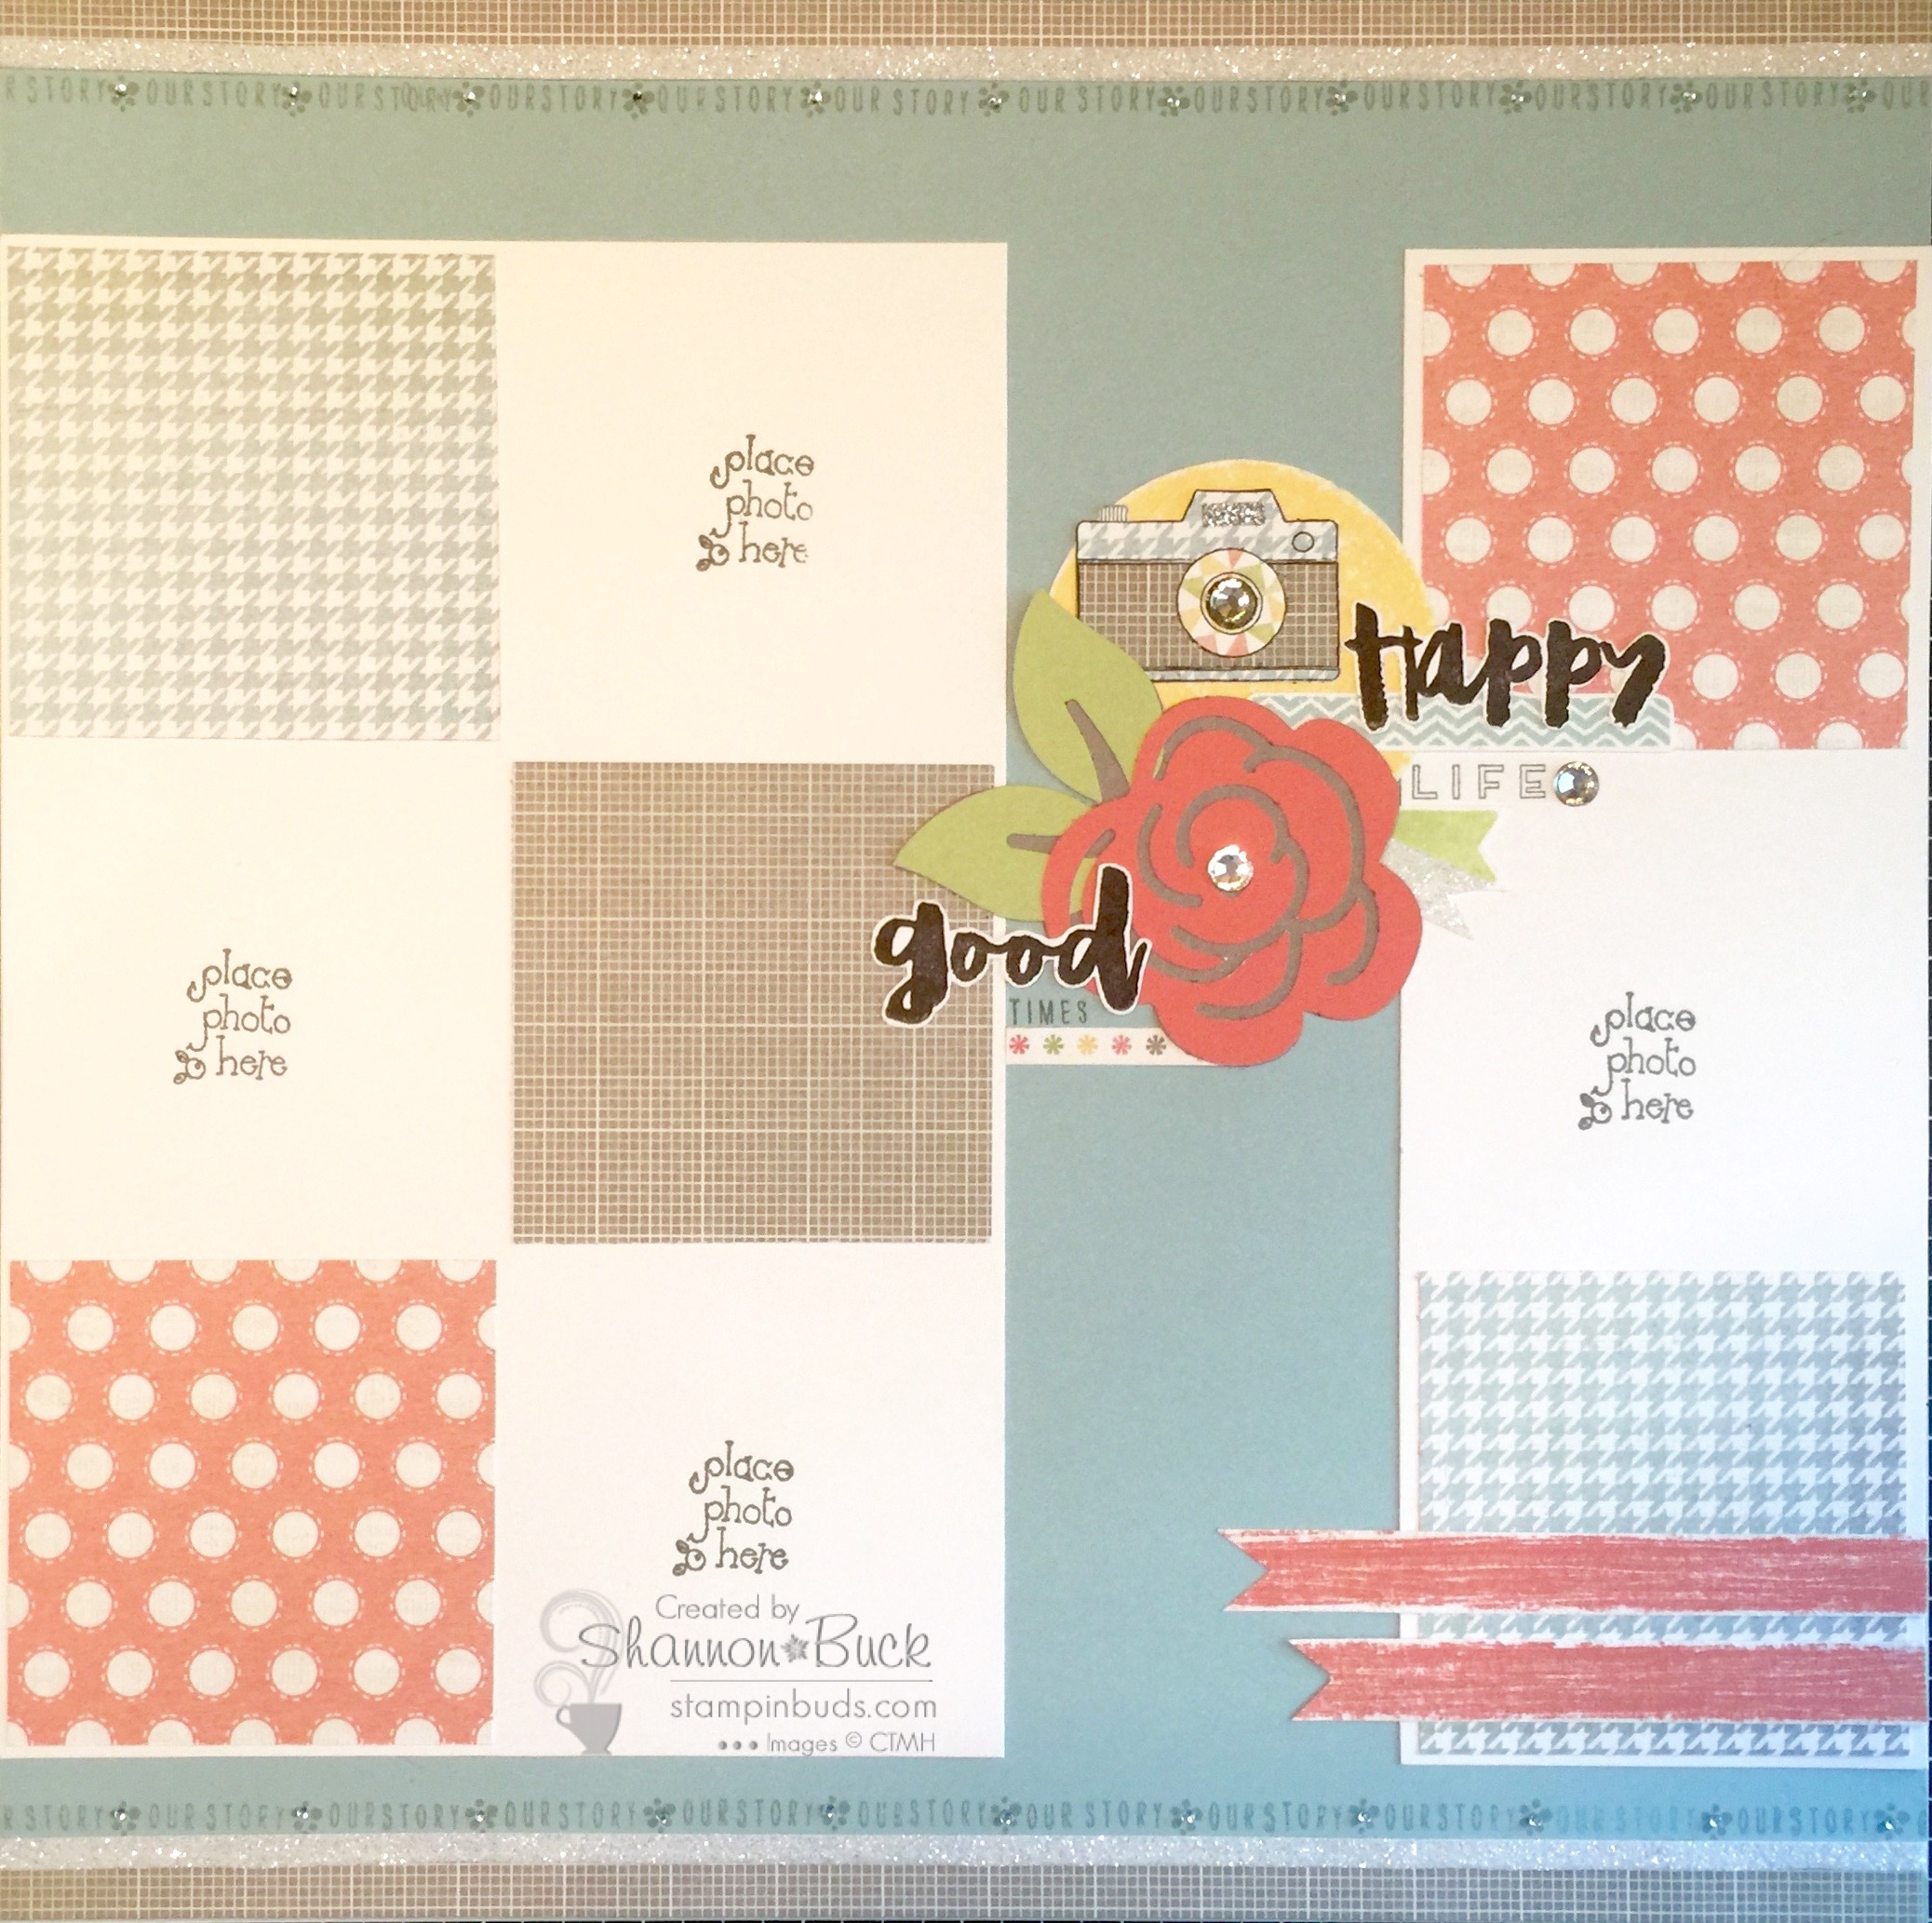 #HelloLife Scrapbooking Page Stampin' Buds